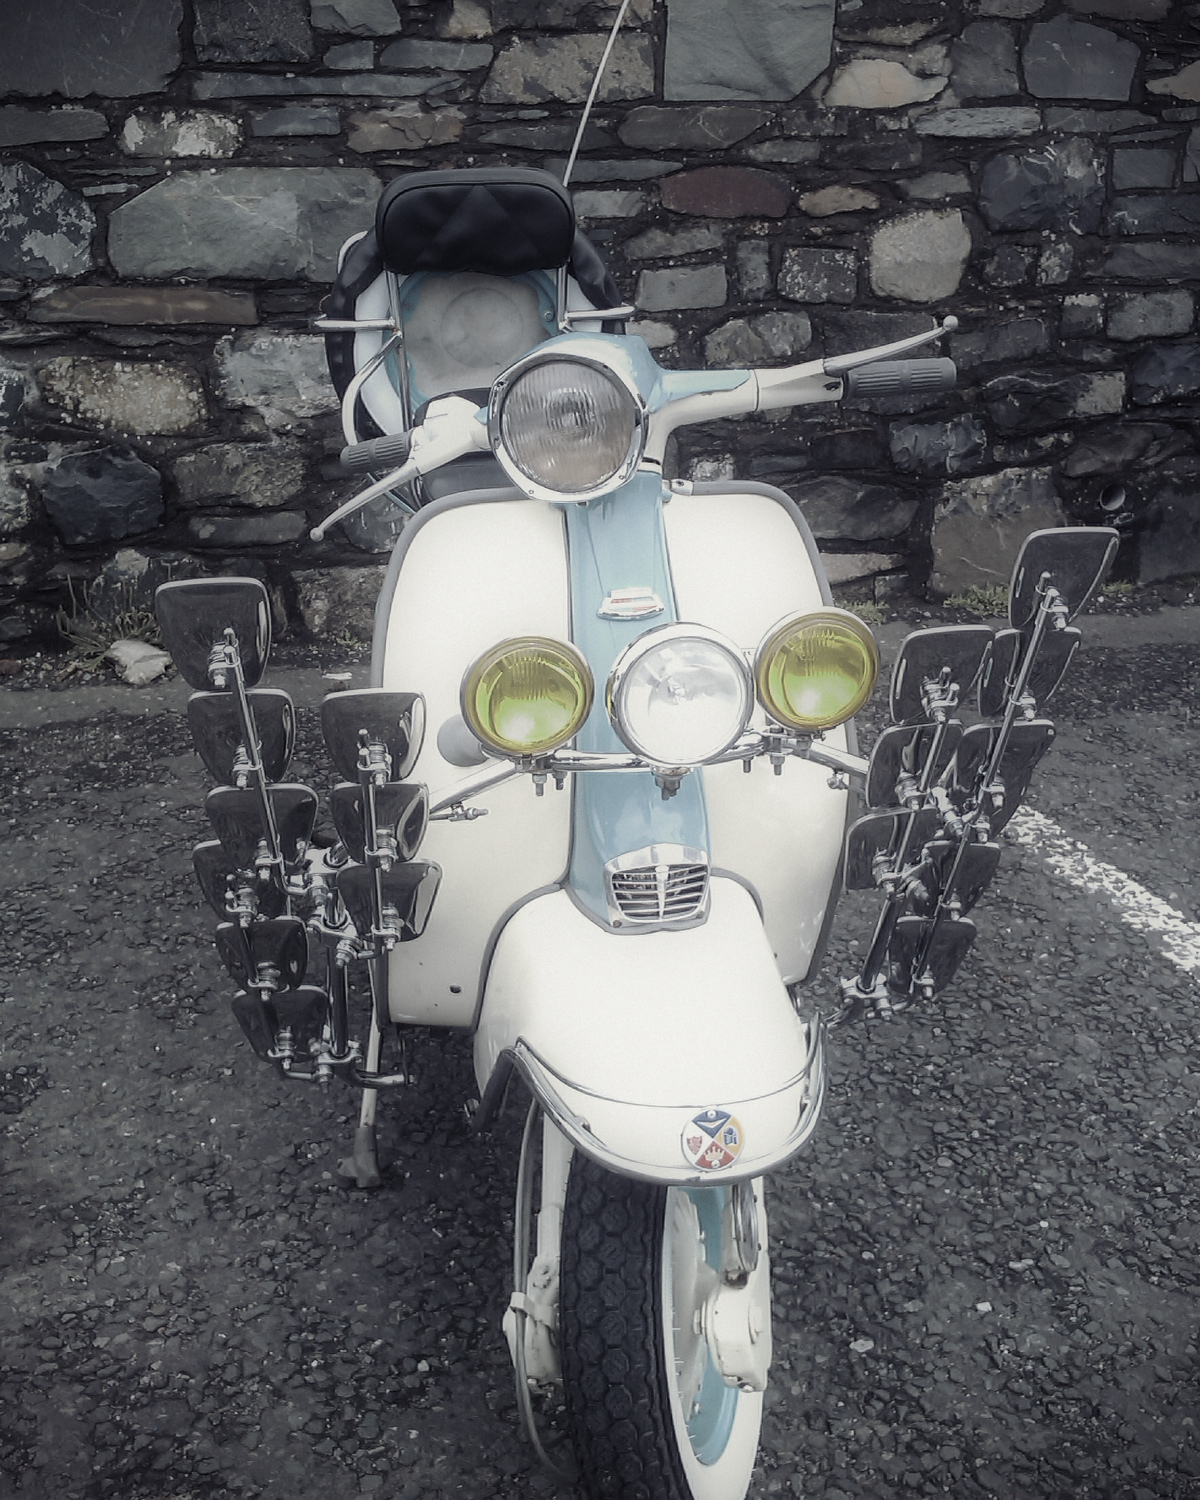 A small scooter covered in silvery rear-view mirrors, Portpatrick harbour